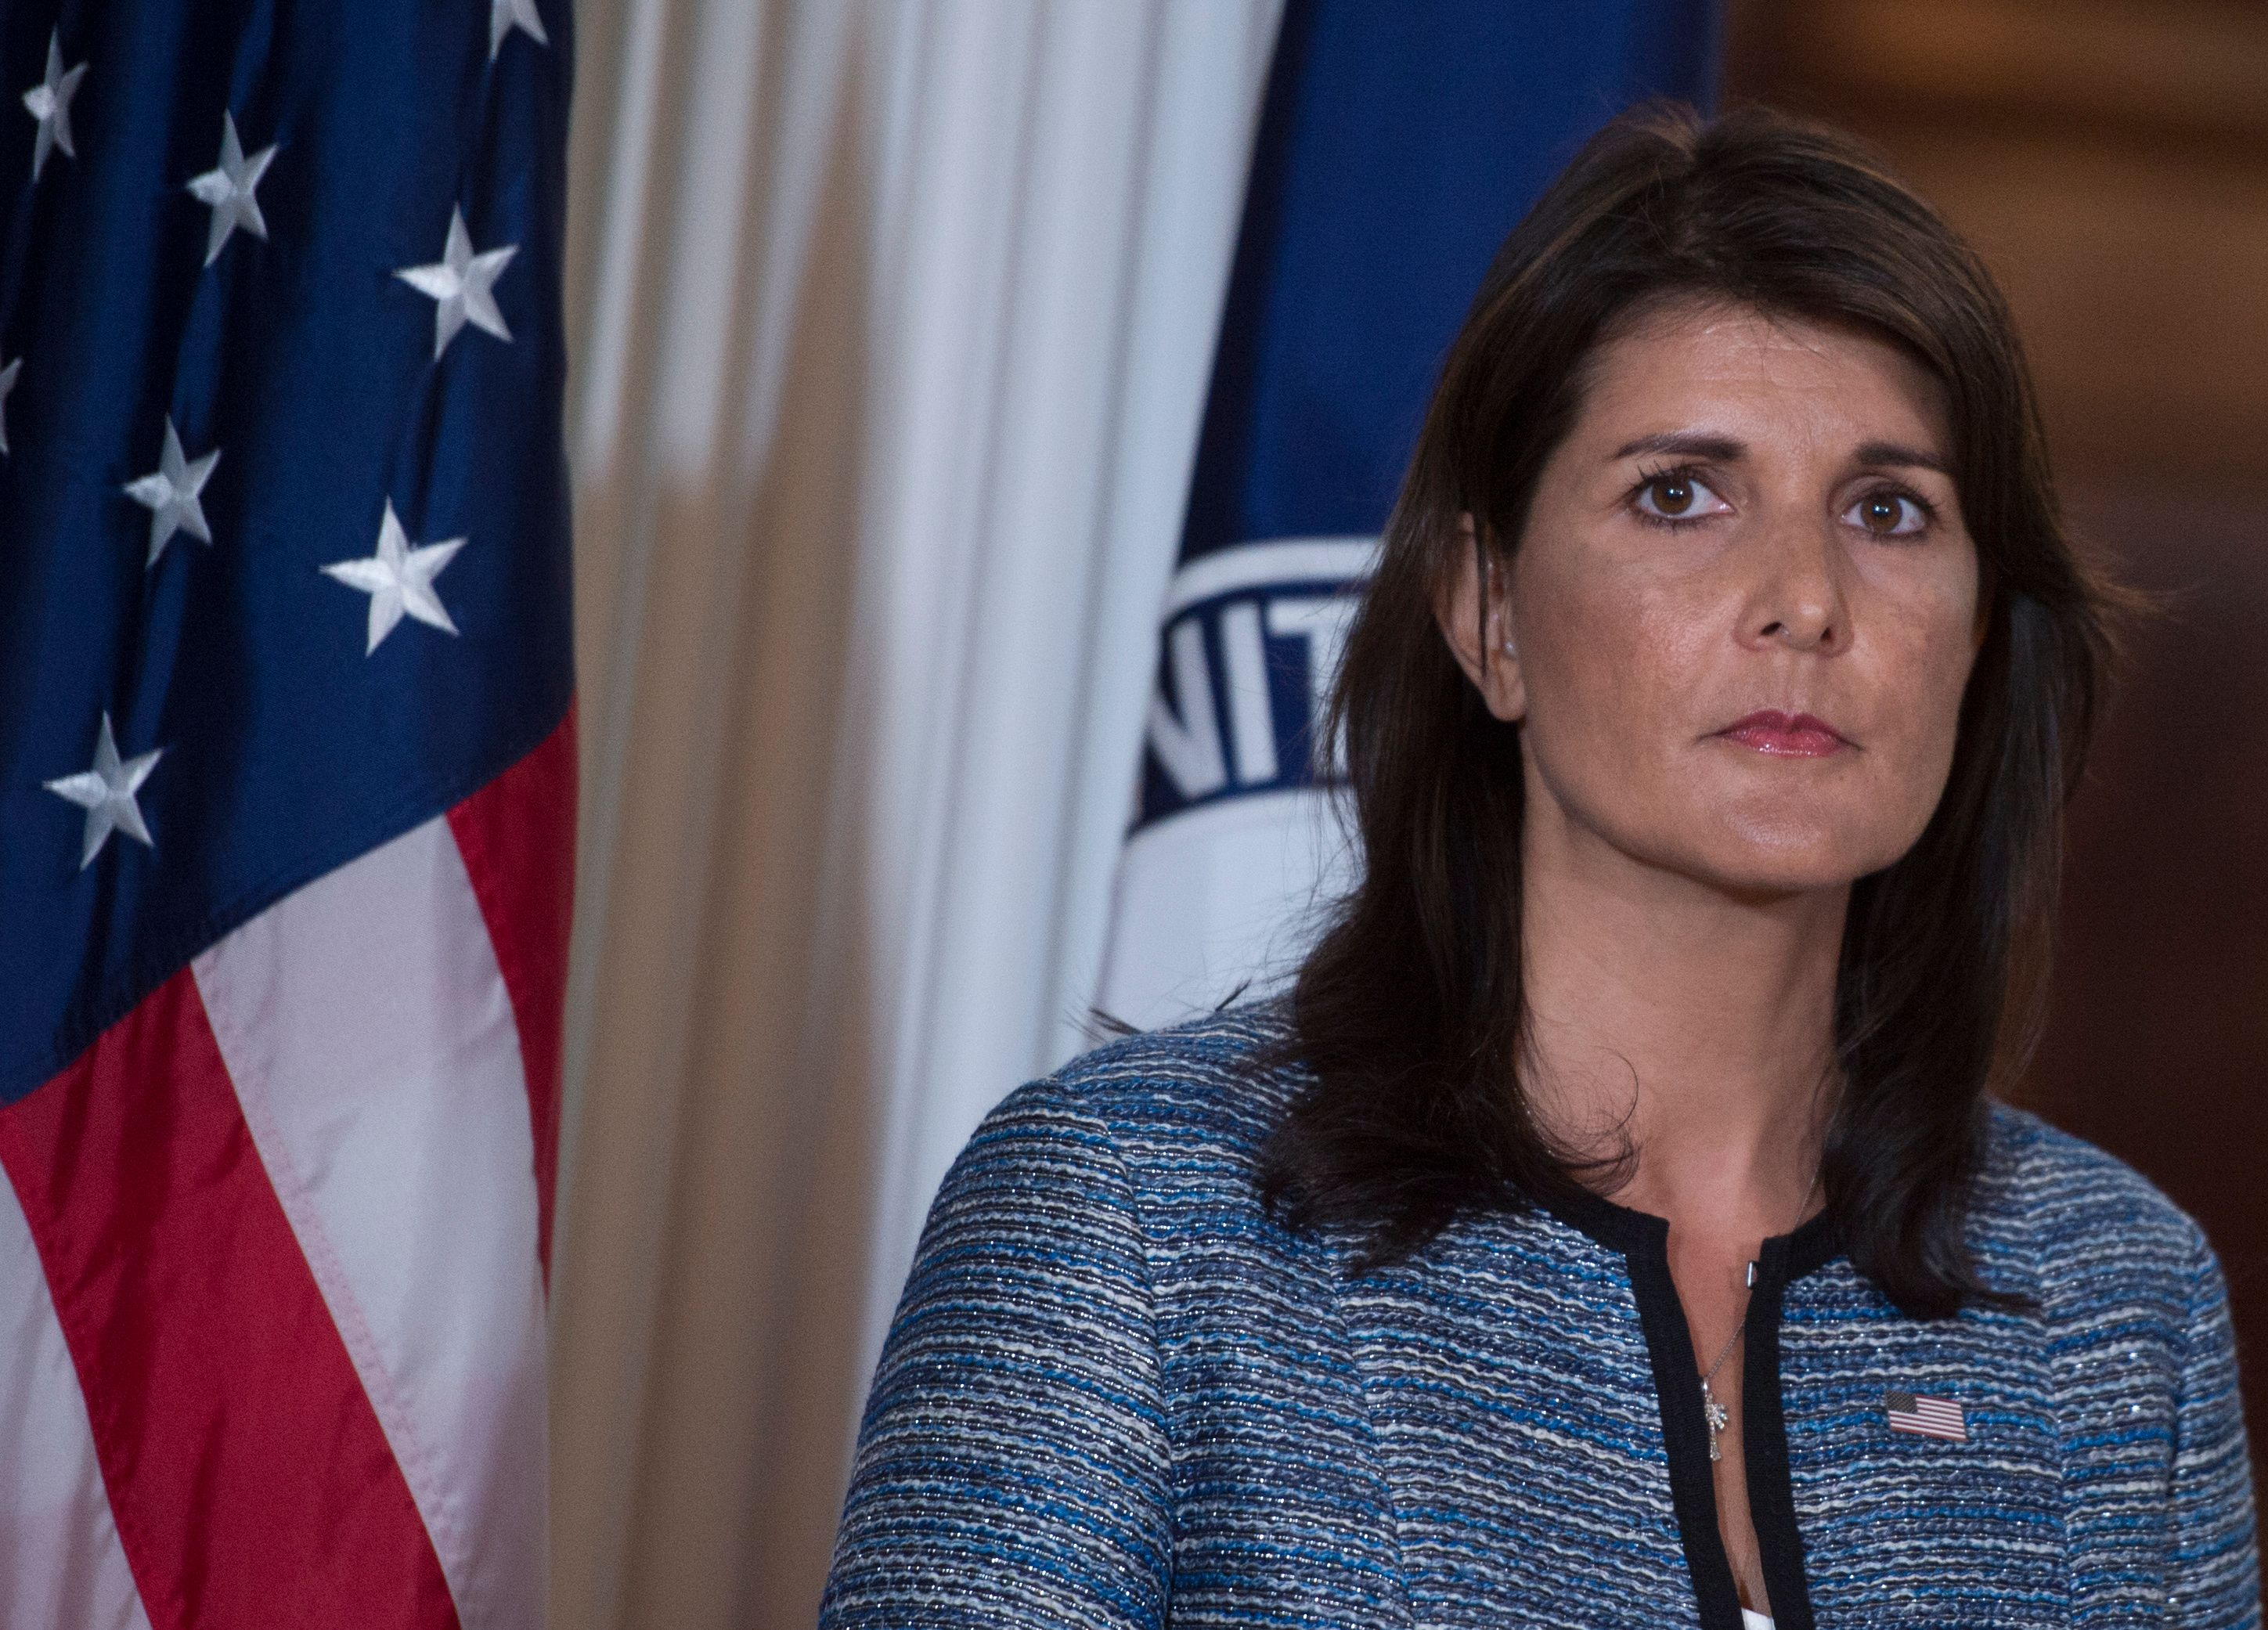 US Ambassador to the United Nation Nikki Haley speaks at the US Department of State in Washington DC on June 19, 2018. The United States announced that it is withdrawing from the U.N. Human Rights Council.